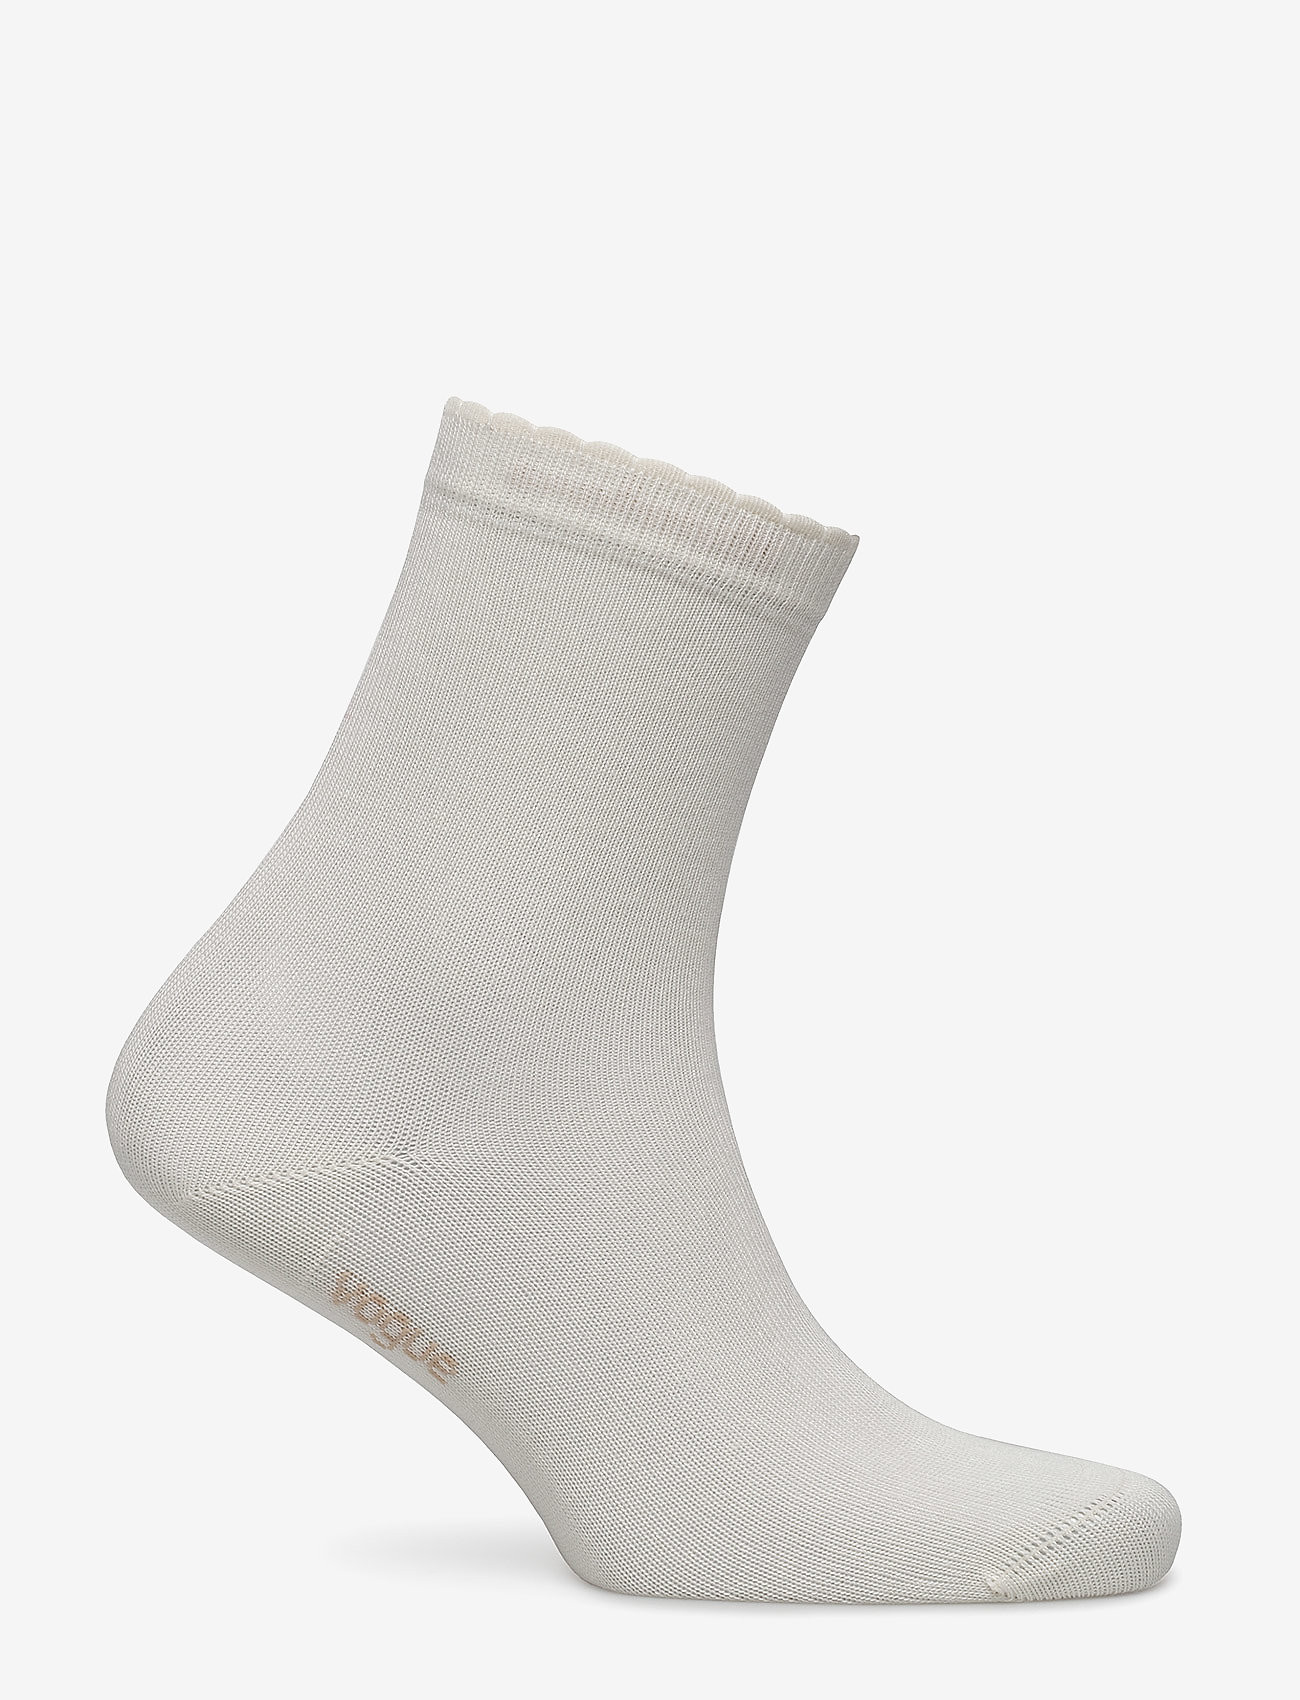 Vogue - Ladies anklesock, Bamboo Socks - sokker - off-white - 1